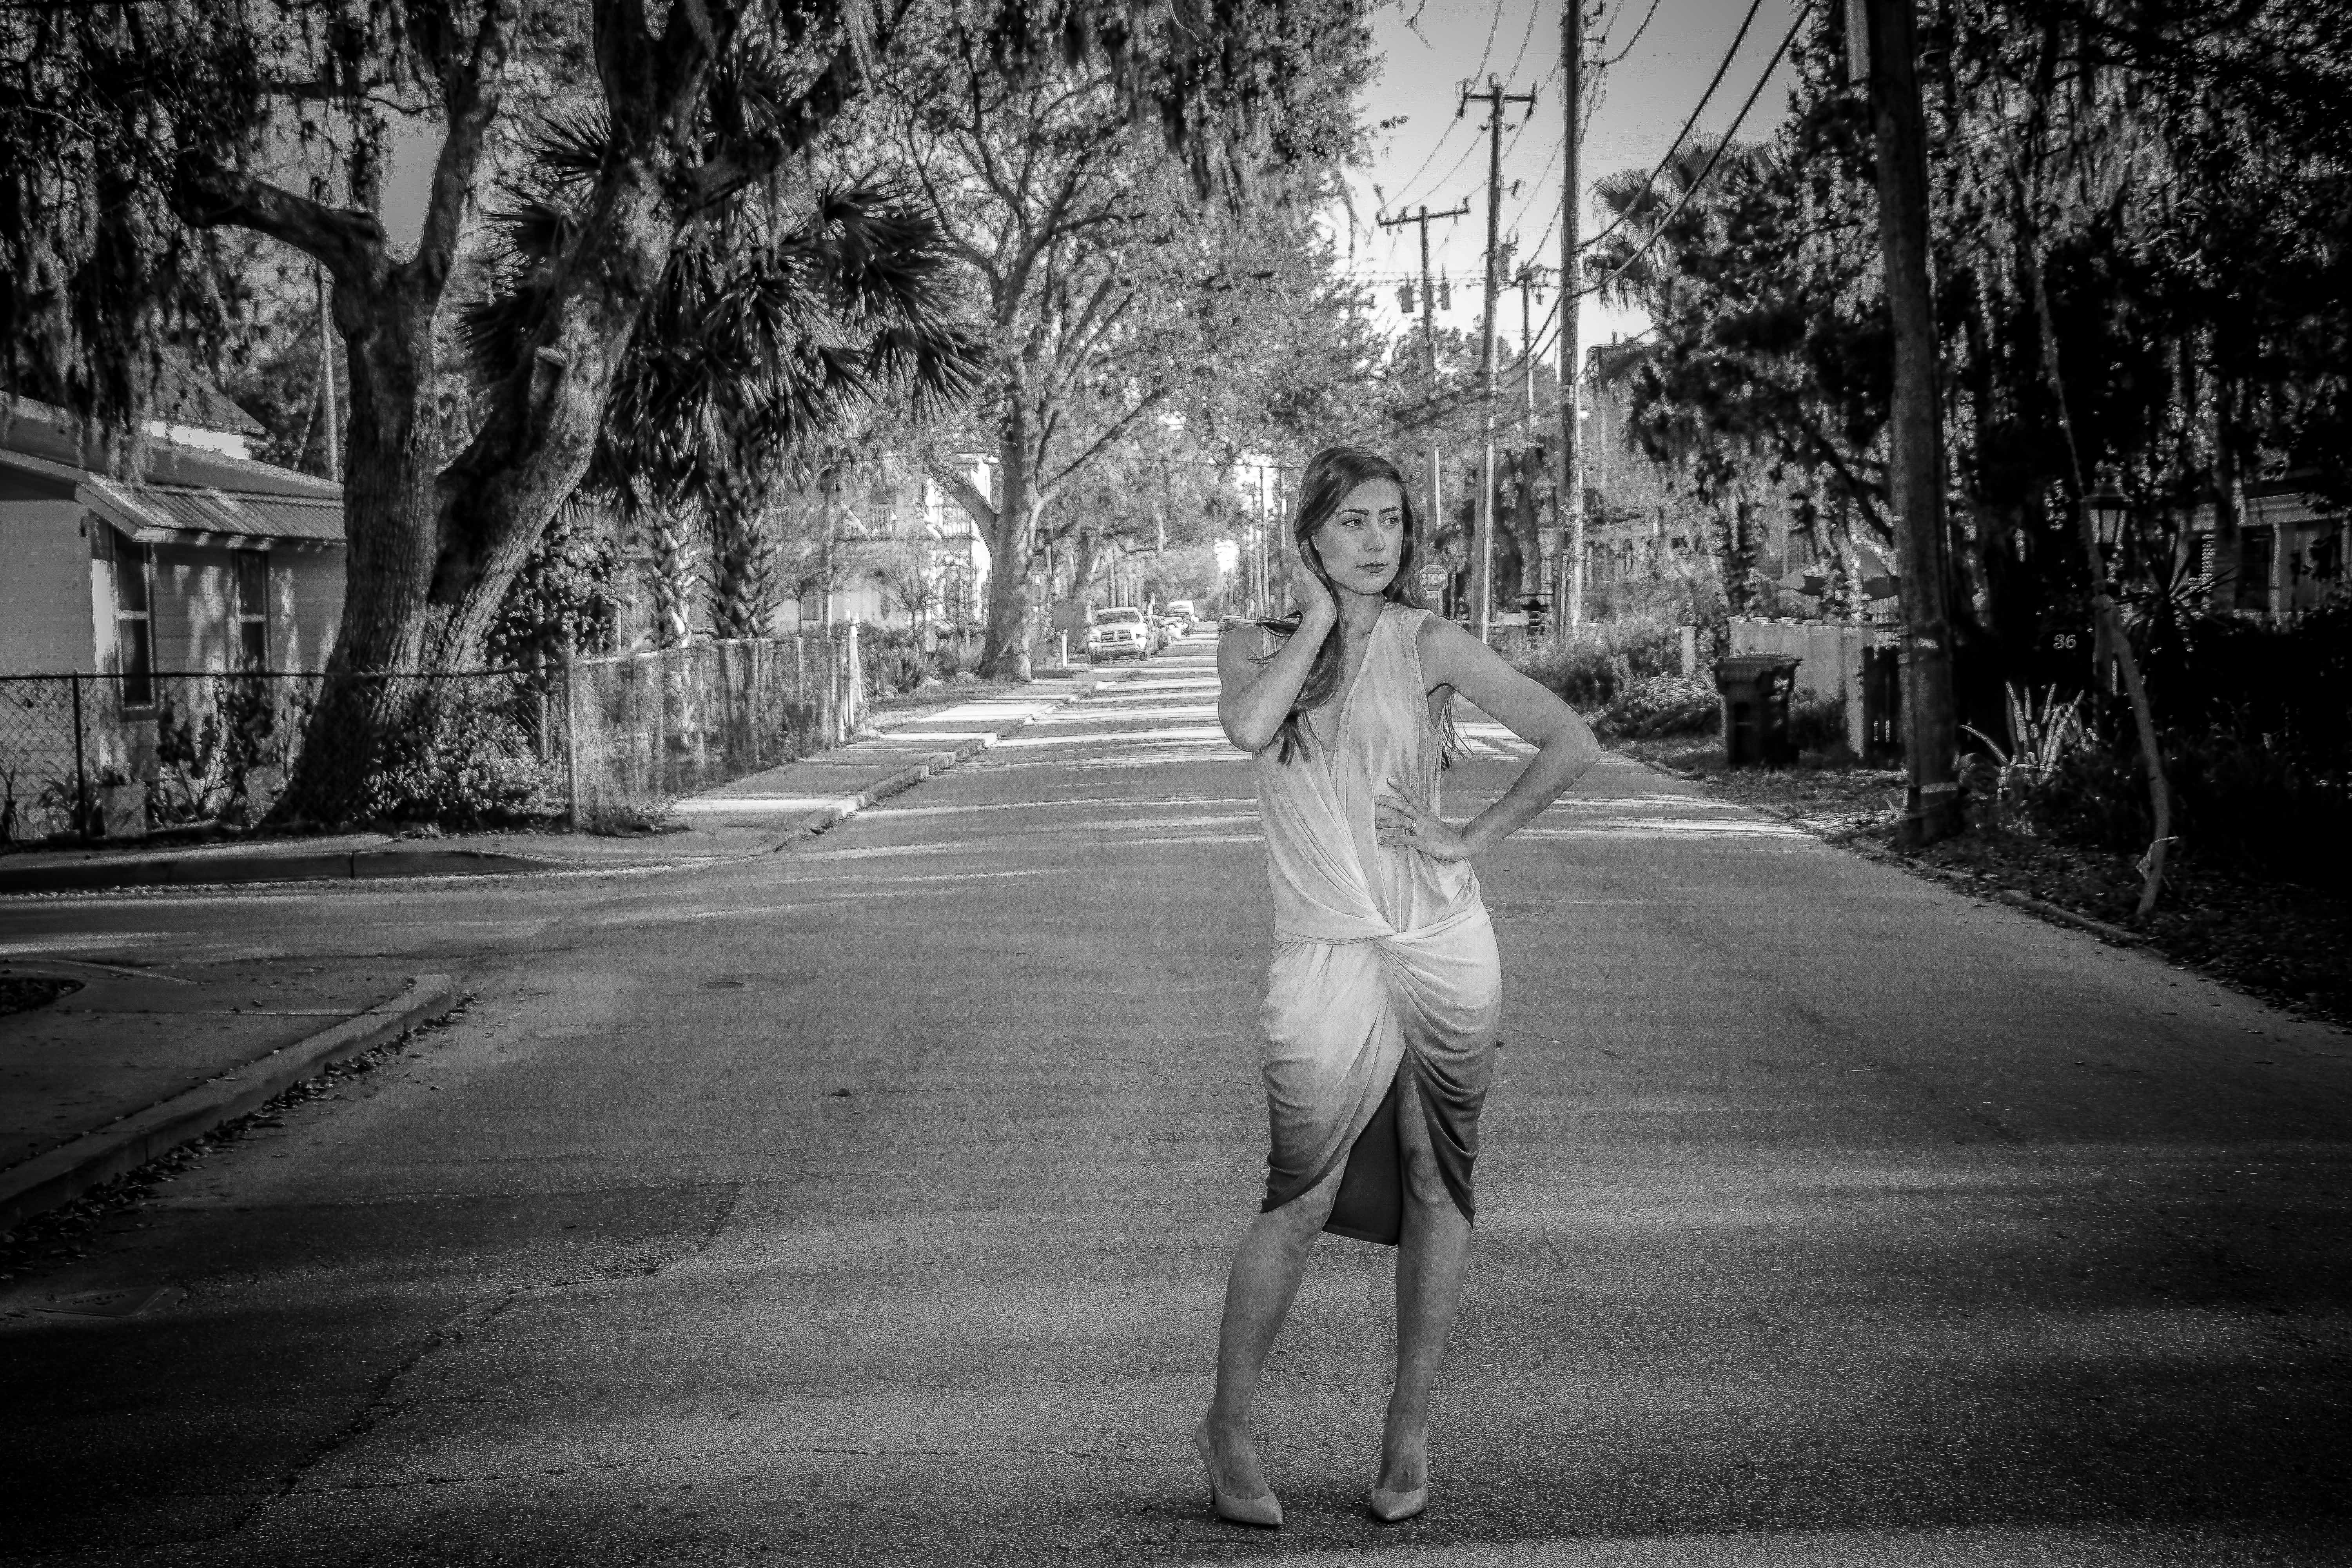 Woman Wearing Dress Standing on Center of Road, Black and white, Pose, Woman, Urban, HQ Photo